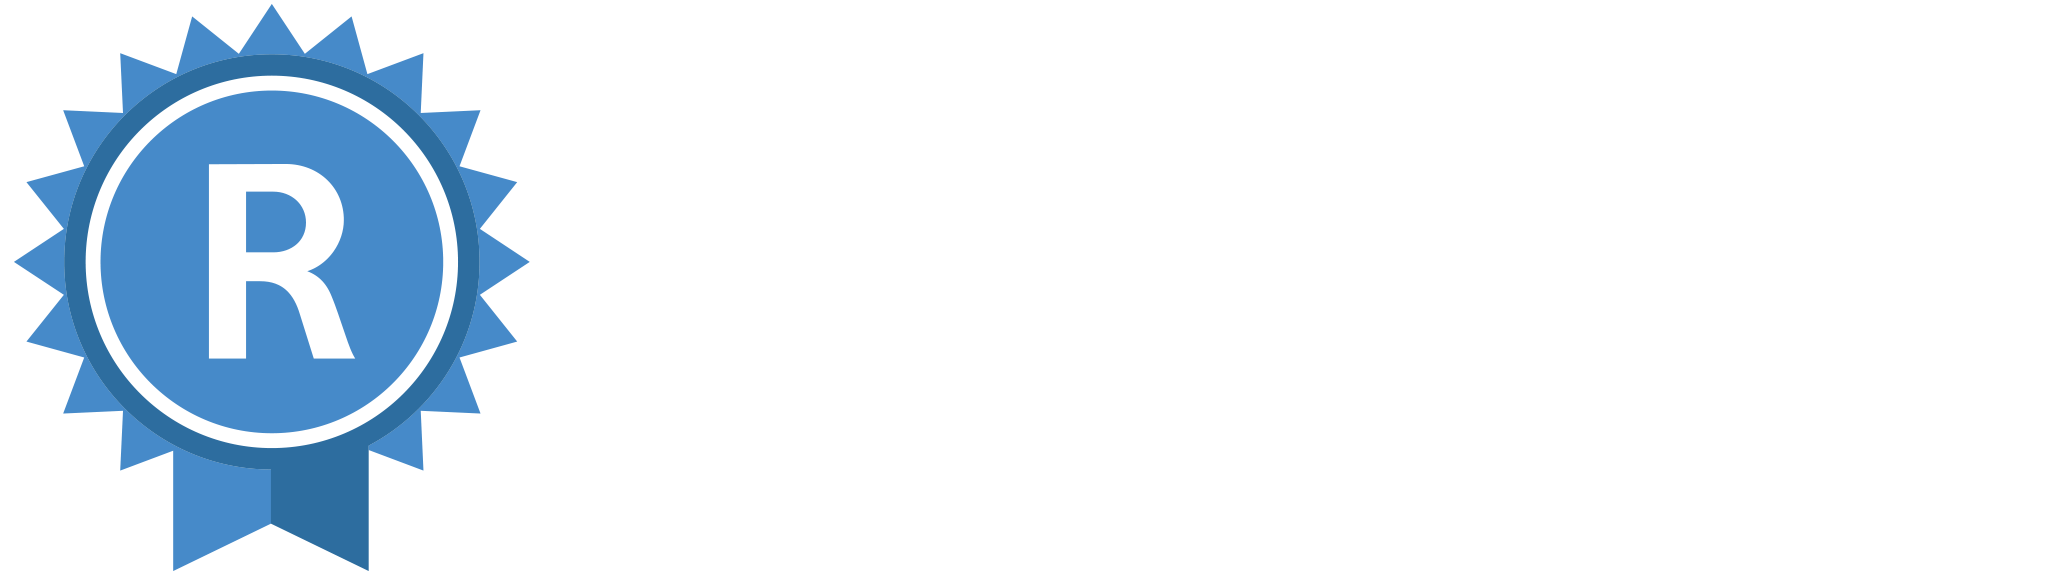 Rewardle Holdings Limited (ACN 168 751 746)